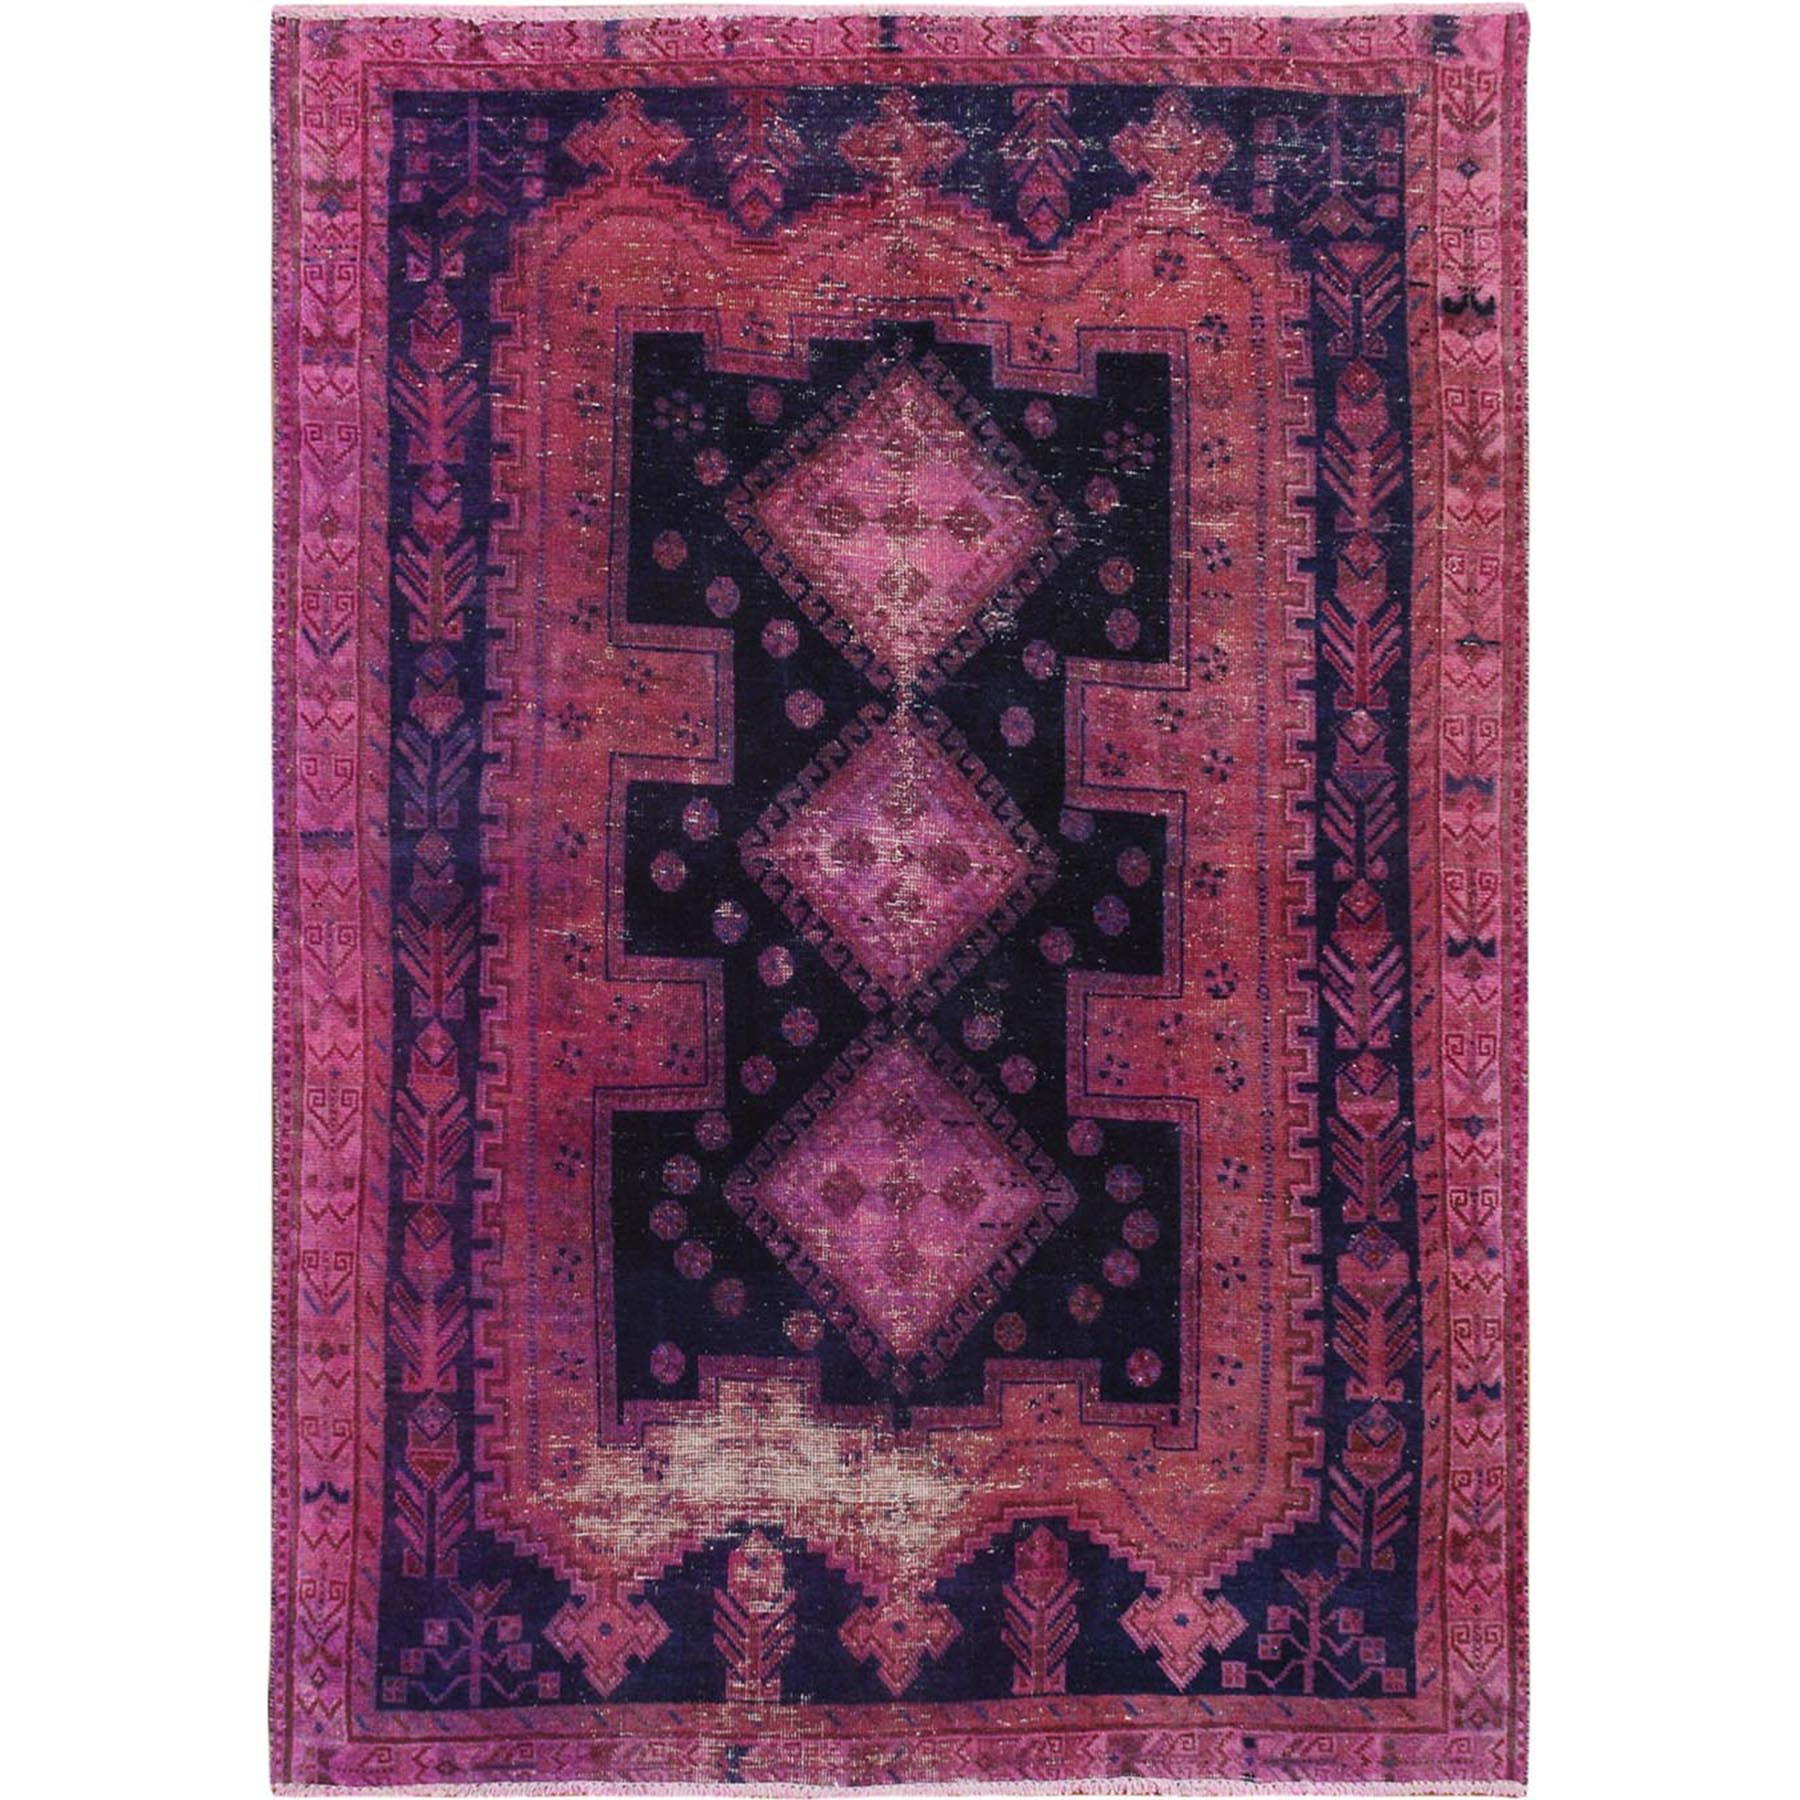 "4'1""x5'7"" Pink Vintage and Worn Down Persian Shiraz Clean Hand Woven Pure Wool Oriental Rug"